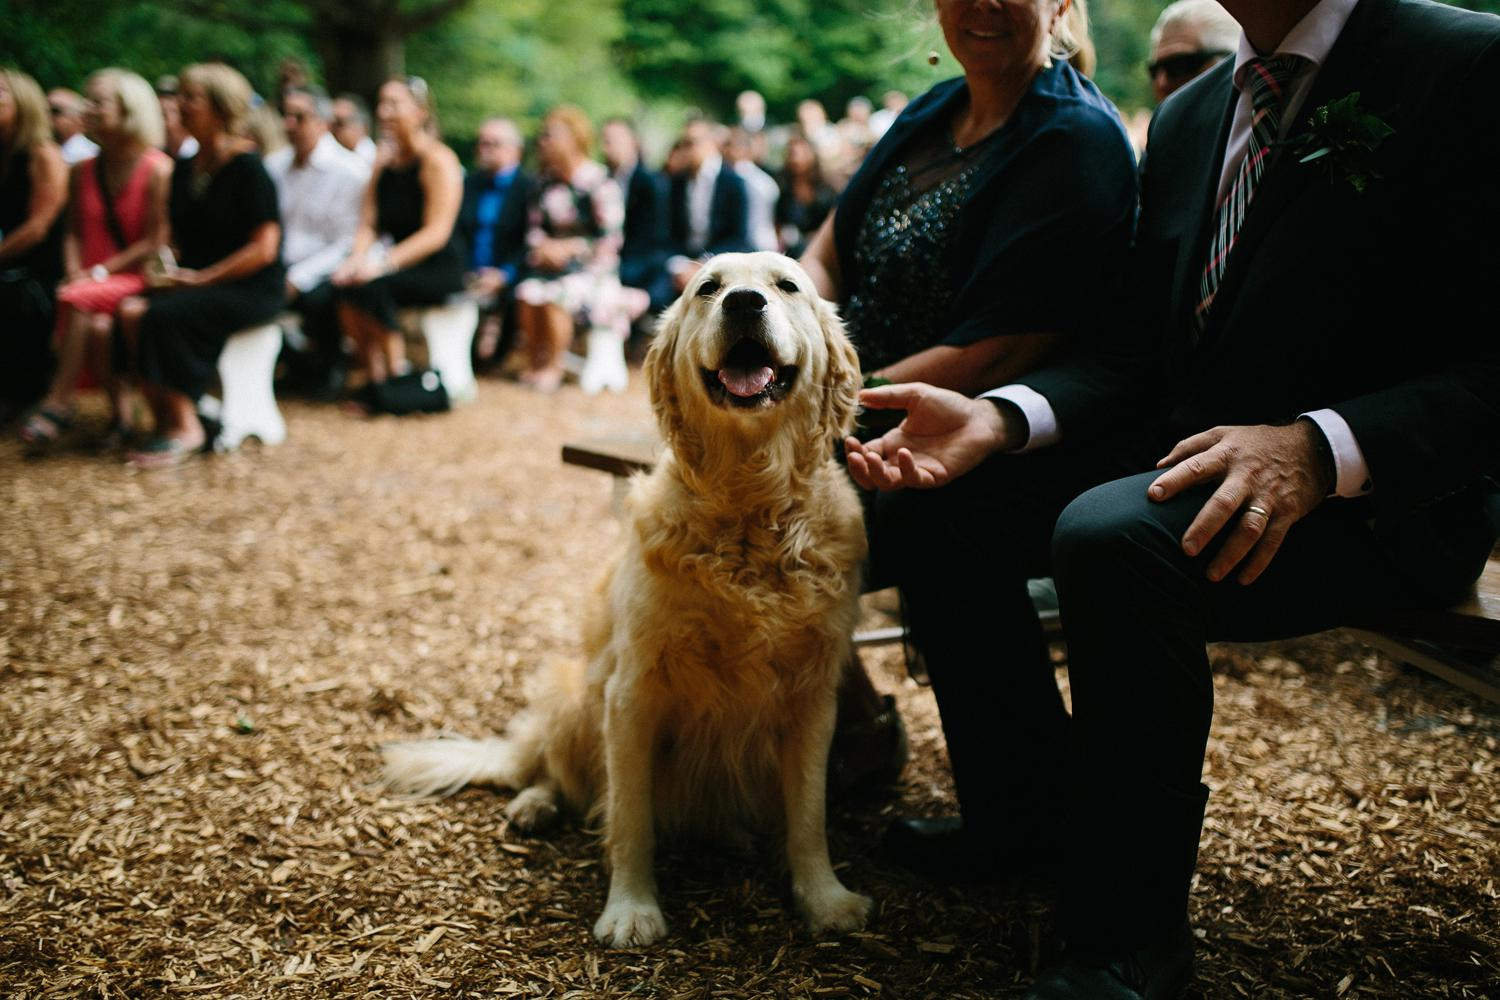 Bailey___Joseph_Wedding_179.jpg